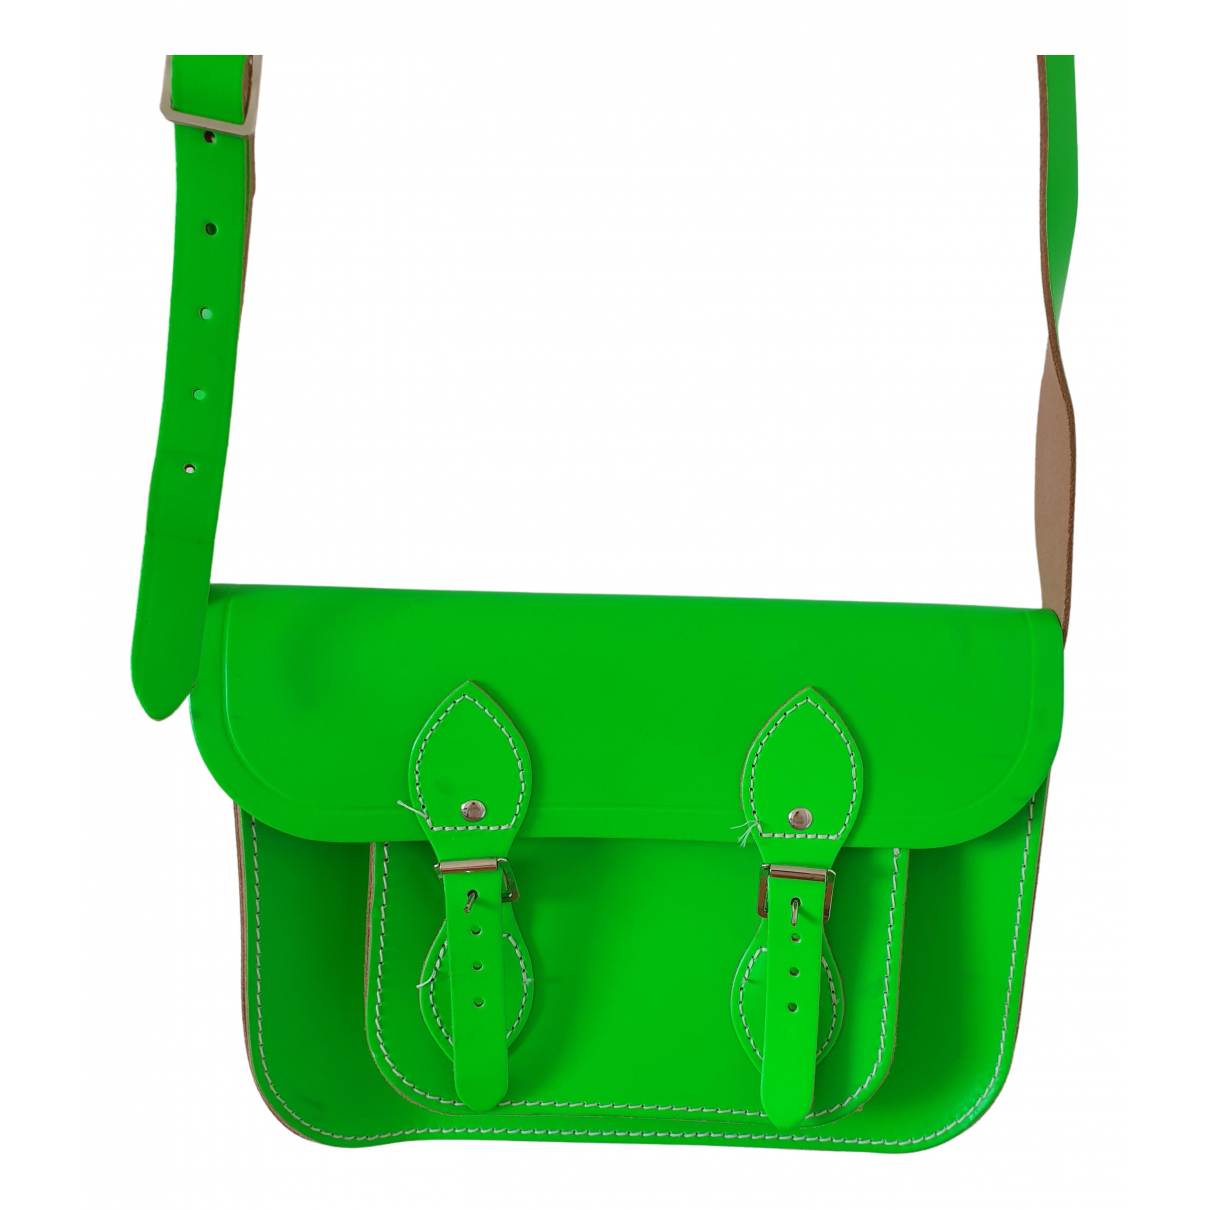 Cambridge Satchel Company \N Handtasche in  Gruen Leder